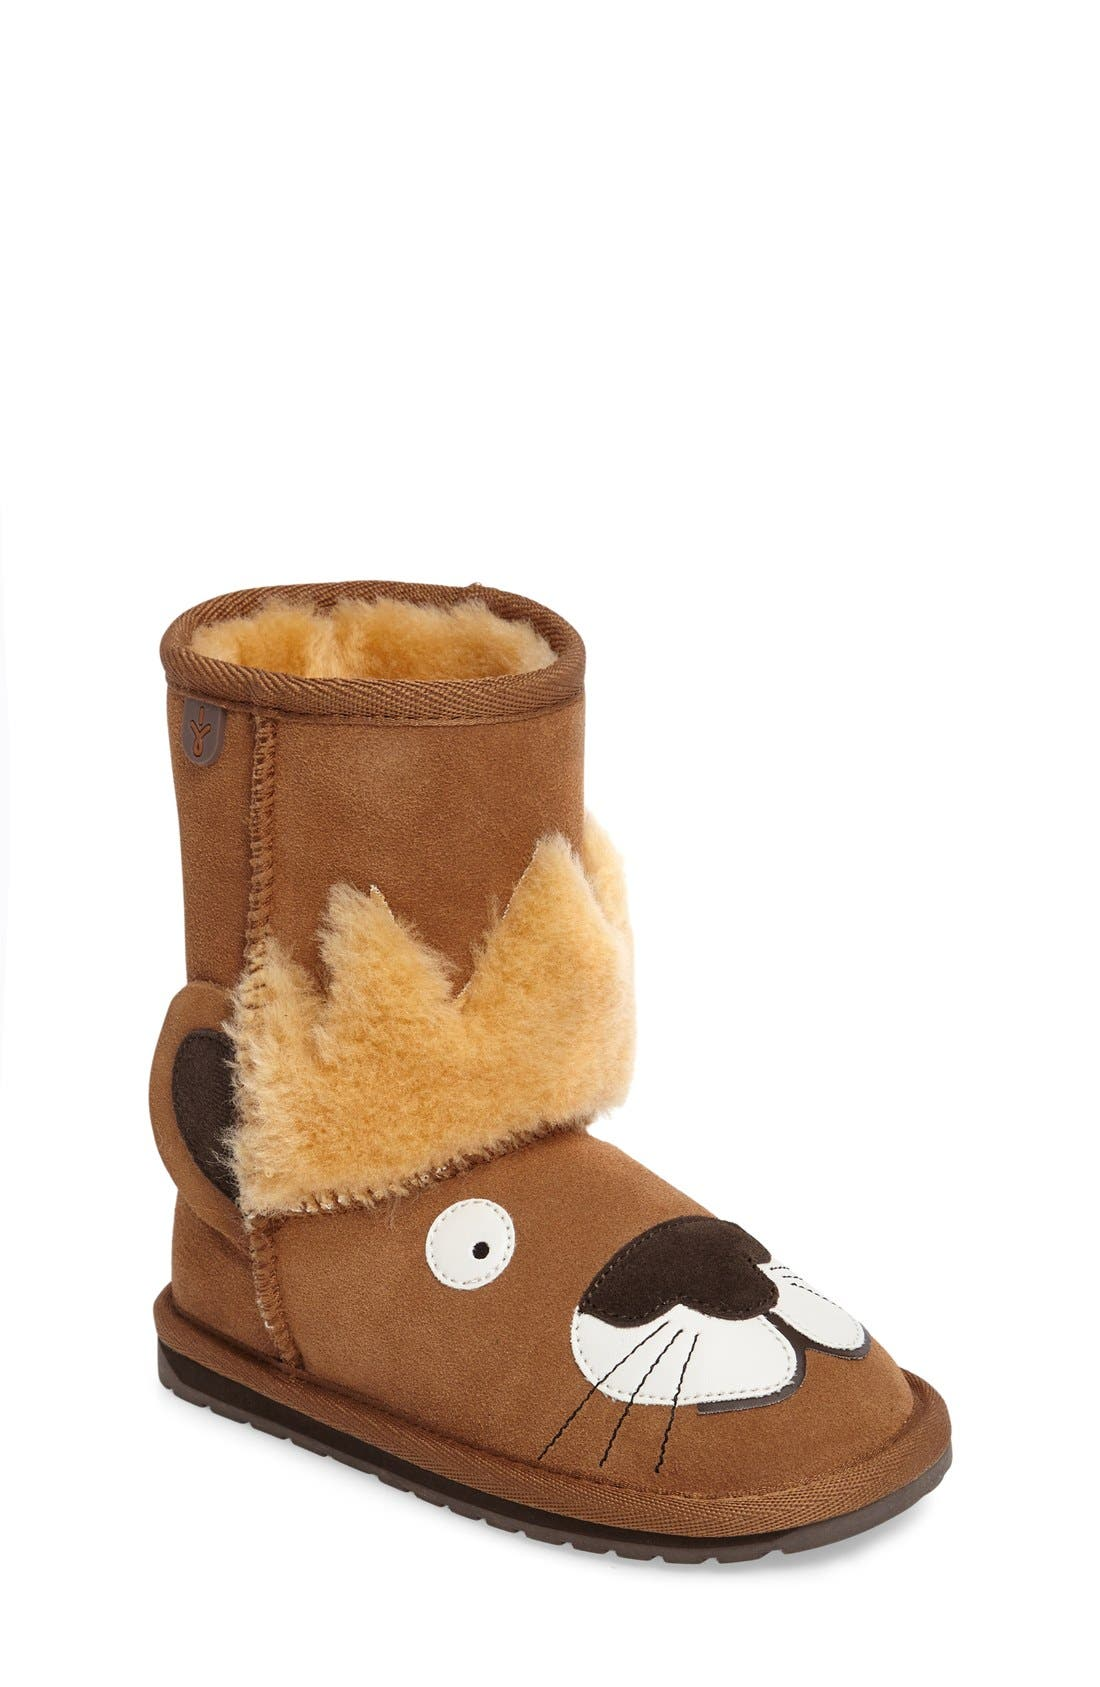 EMU Australia Little Creatures - Leo Lion Boot (Toddler, Little Kid & Big Kid)